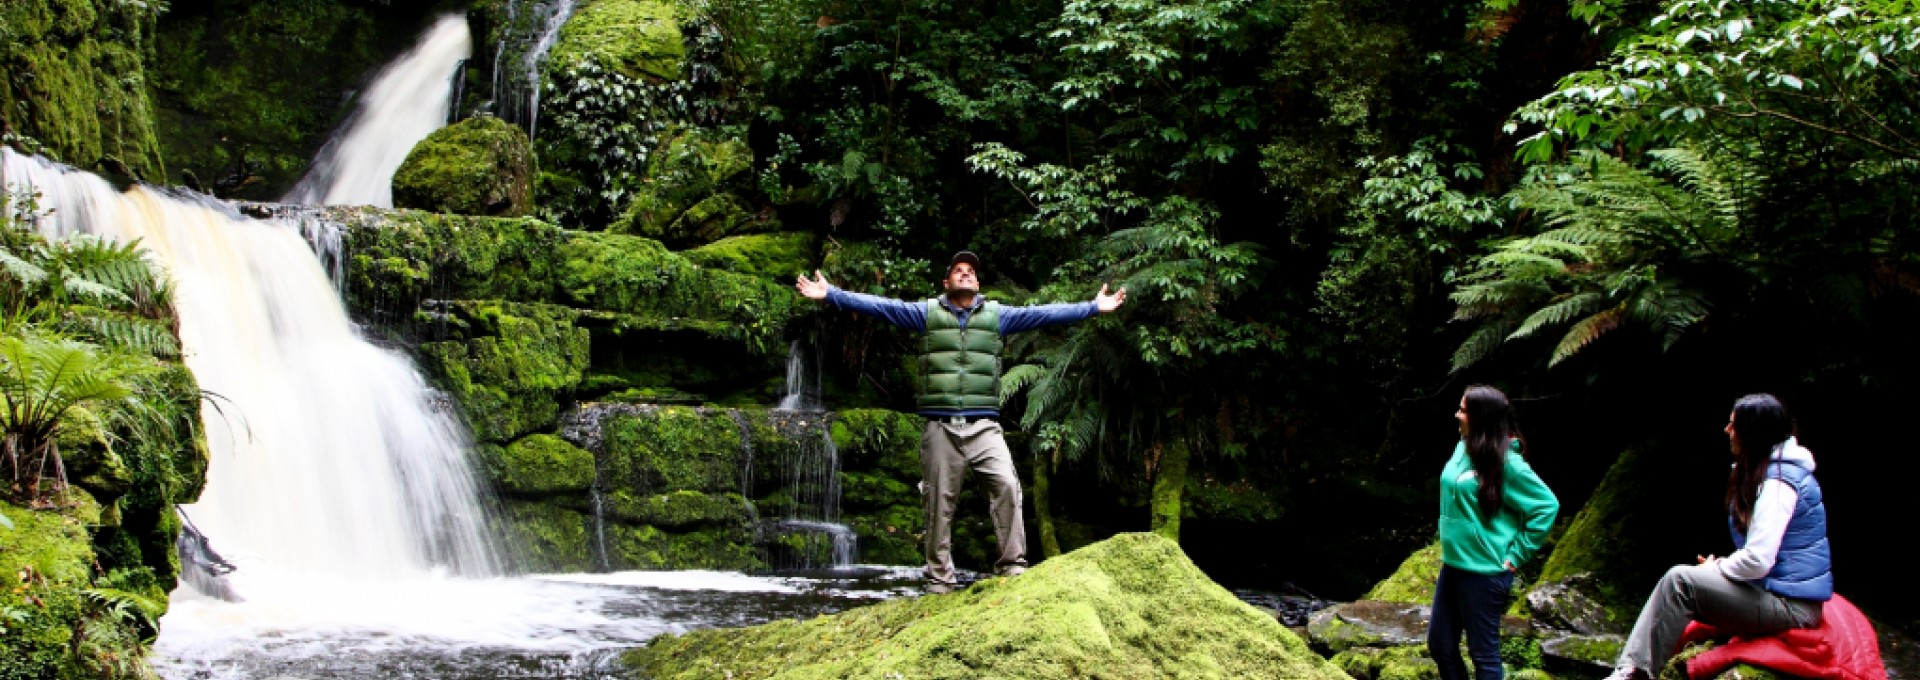 Discover amazing waterfalls on The Catlins coast in Southland